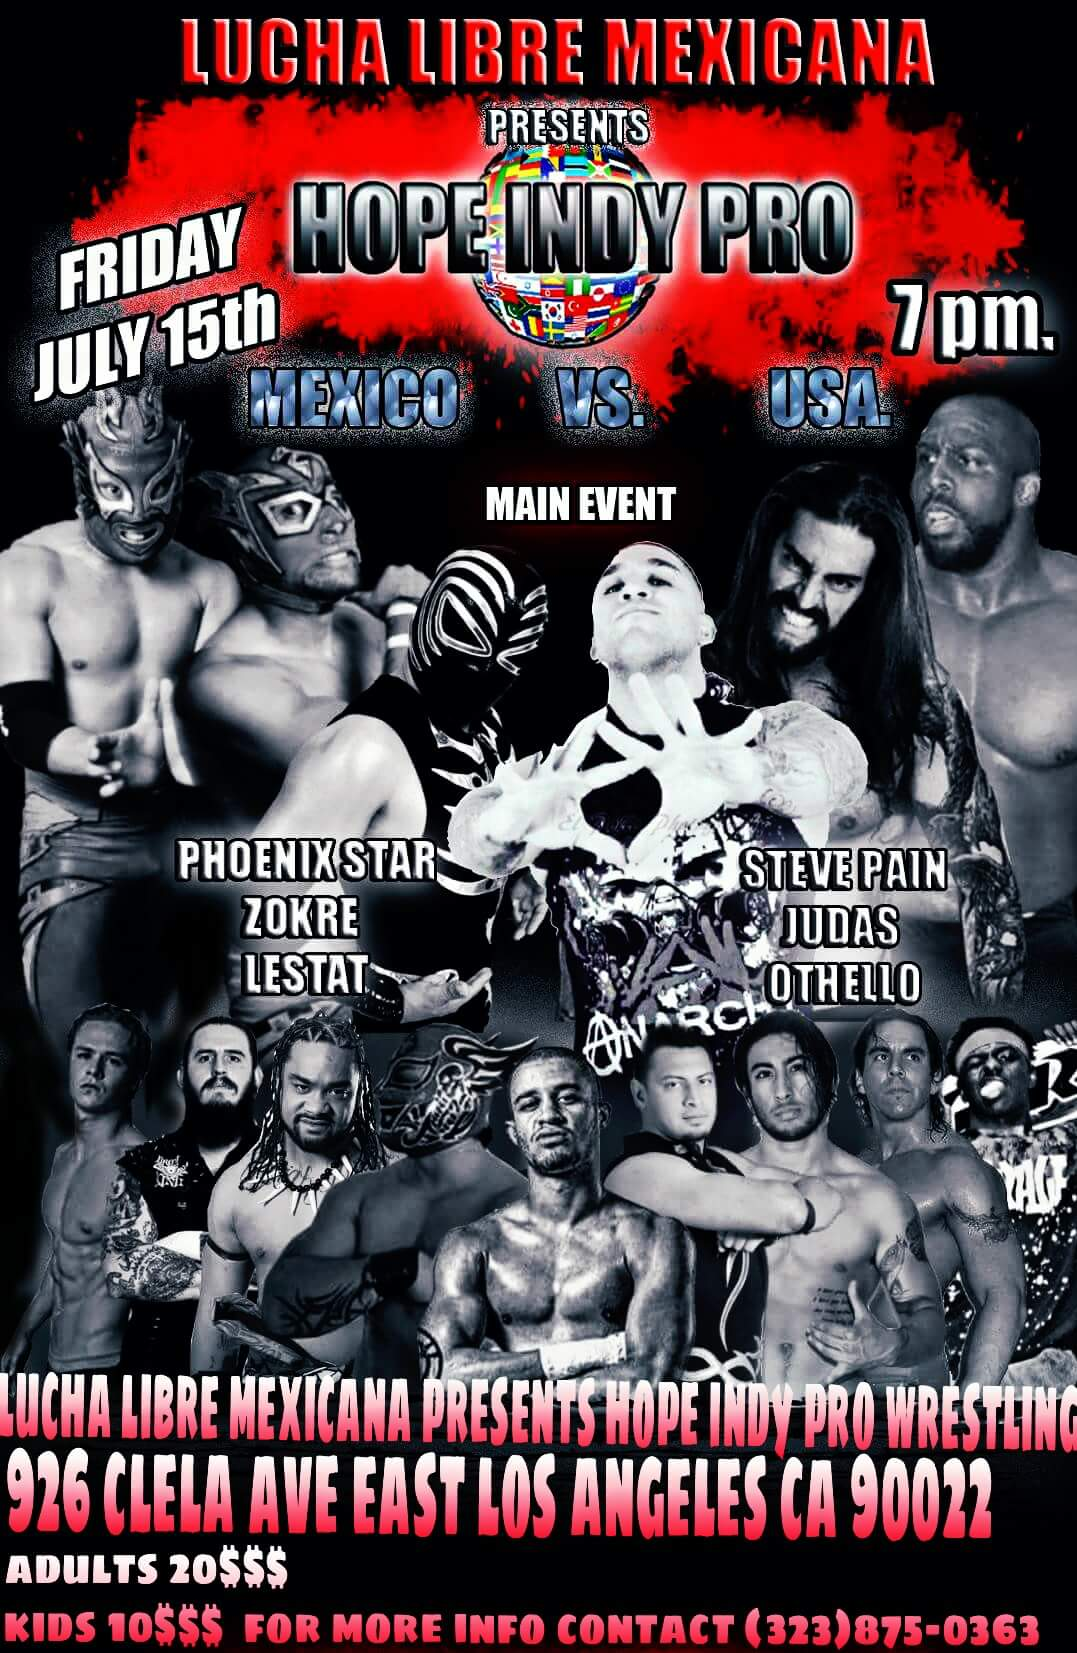 Lucha Libre Mexicana presents Hope Indy Pro in East Los ...